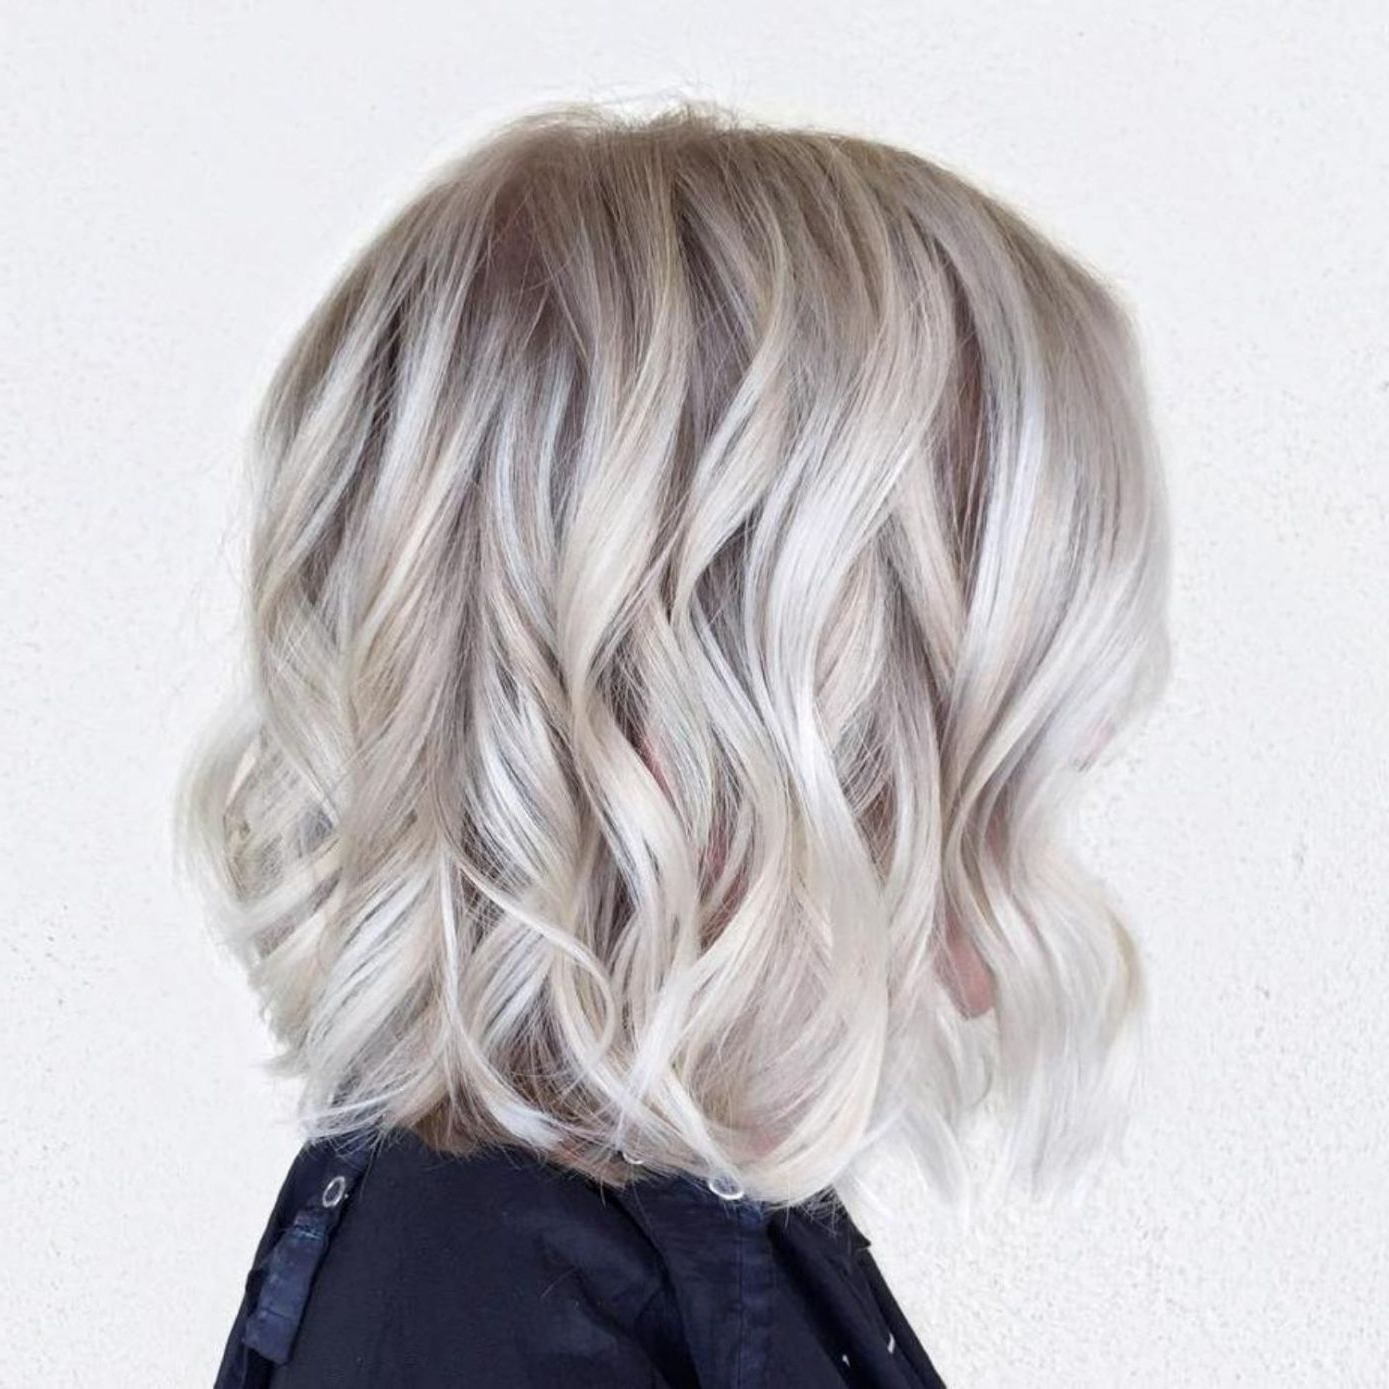 70 Winning Looks With Bob Haircuts For Fine Hair In 2018 | Hair With Regard To White Blonde Curly Layered Bob Hairstyles (View 10 of 25)